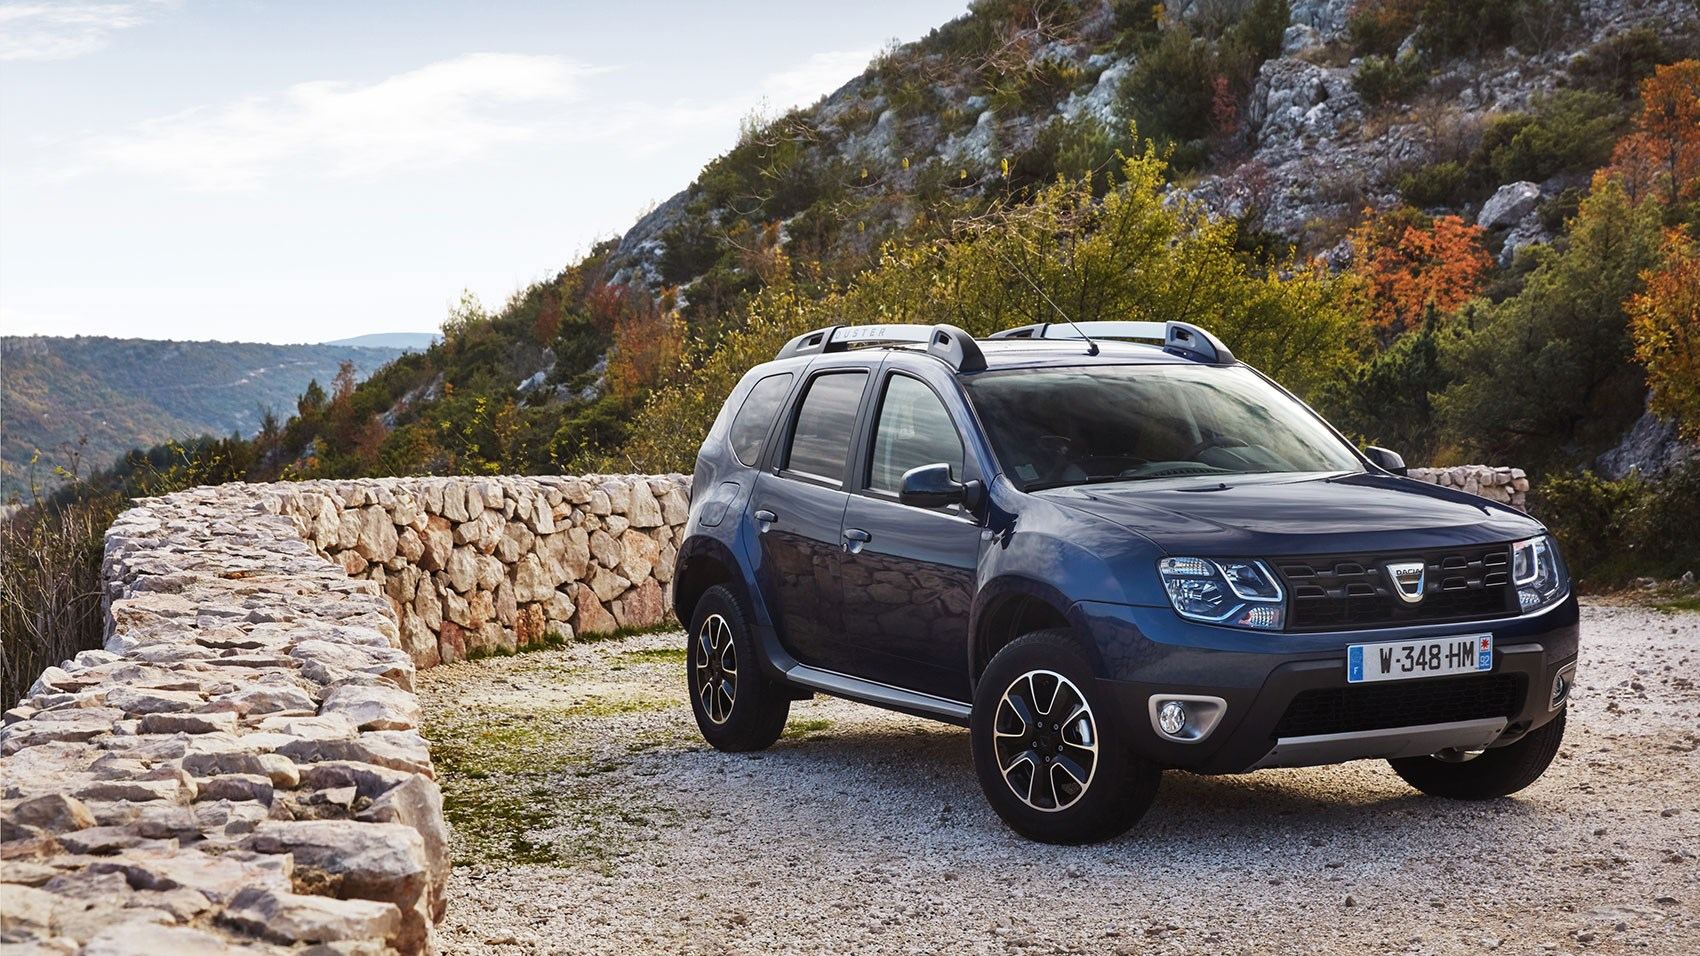 dacia duster prestige dci 110 edc 2017 review by car magazine. Black Bedroom Furniture Sets. Home Design Ideas